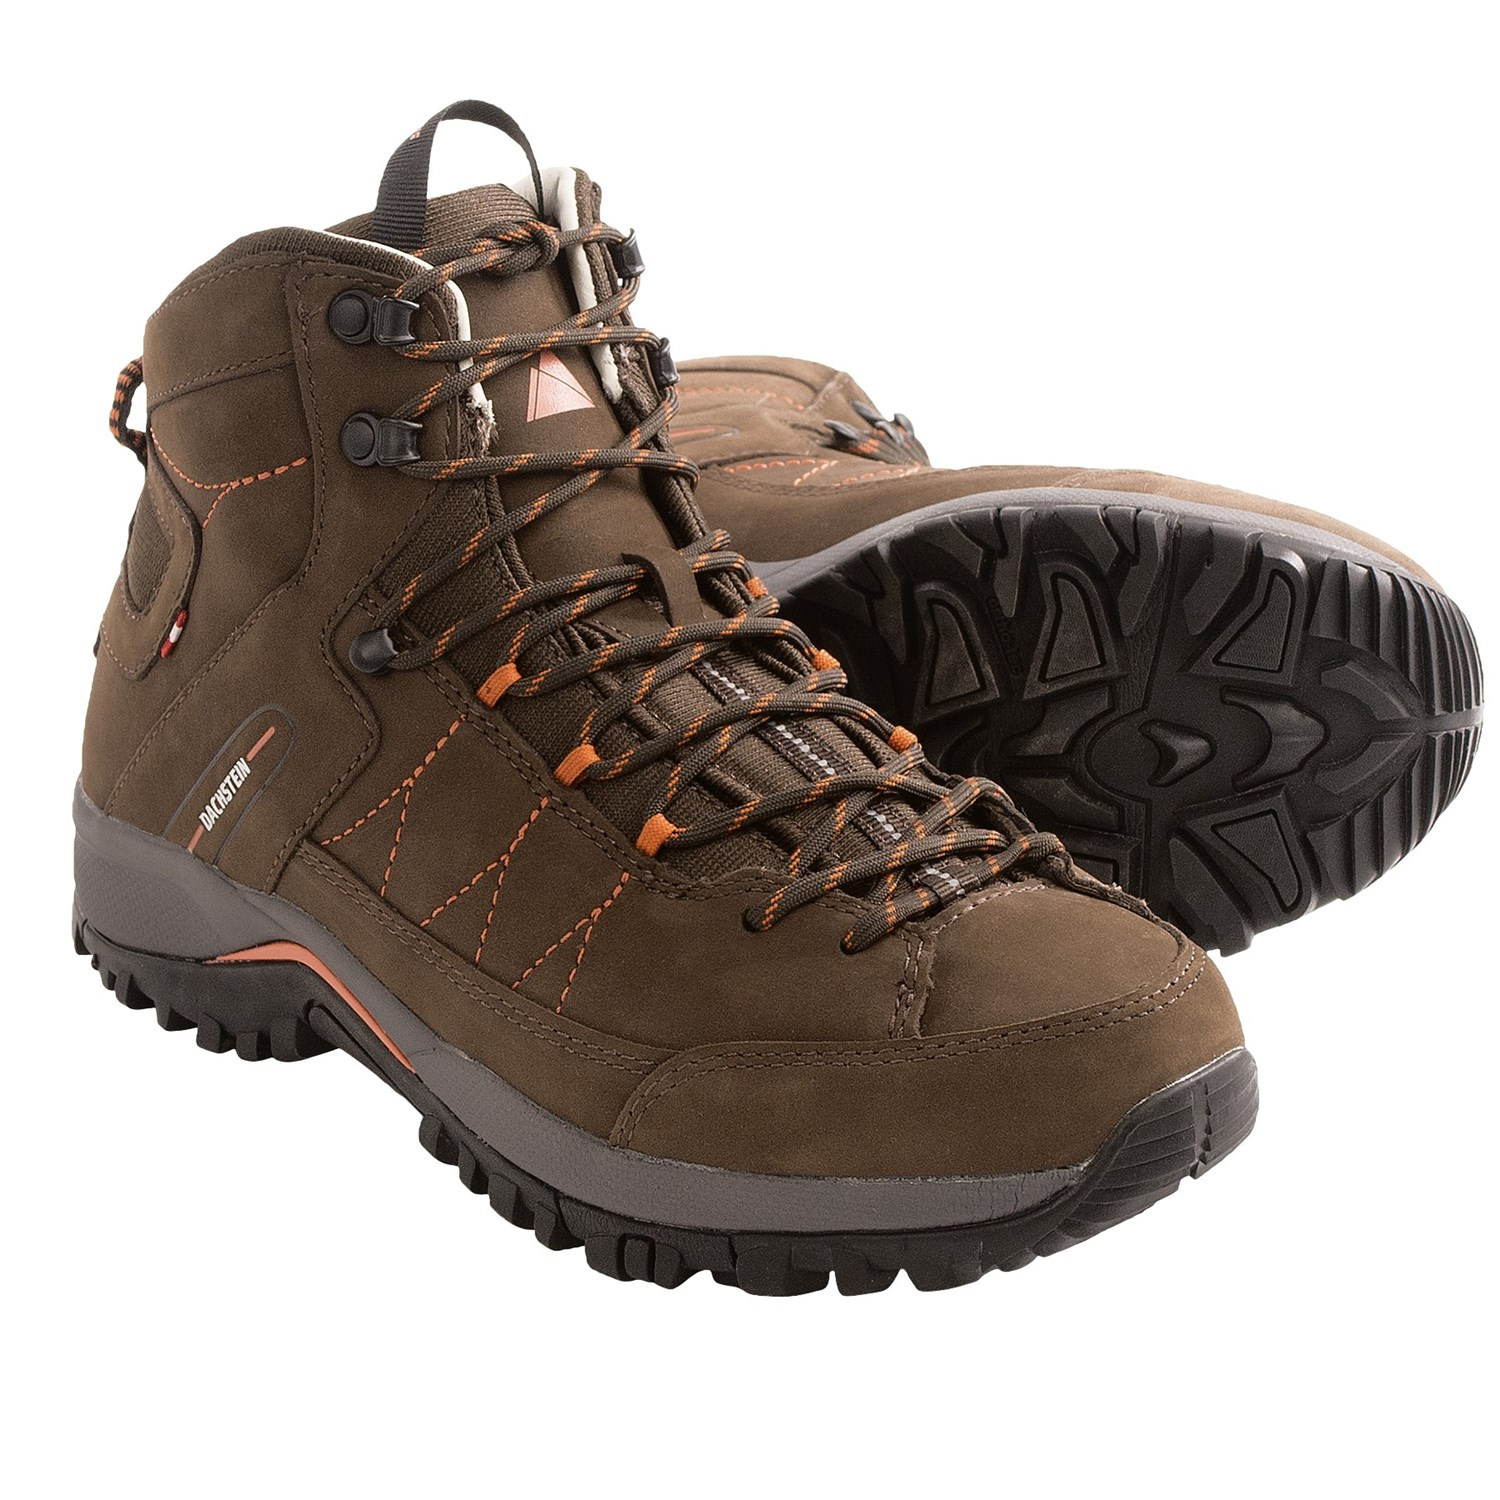 Trekking Shoes For Girls